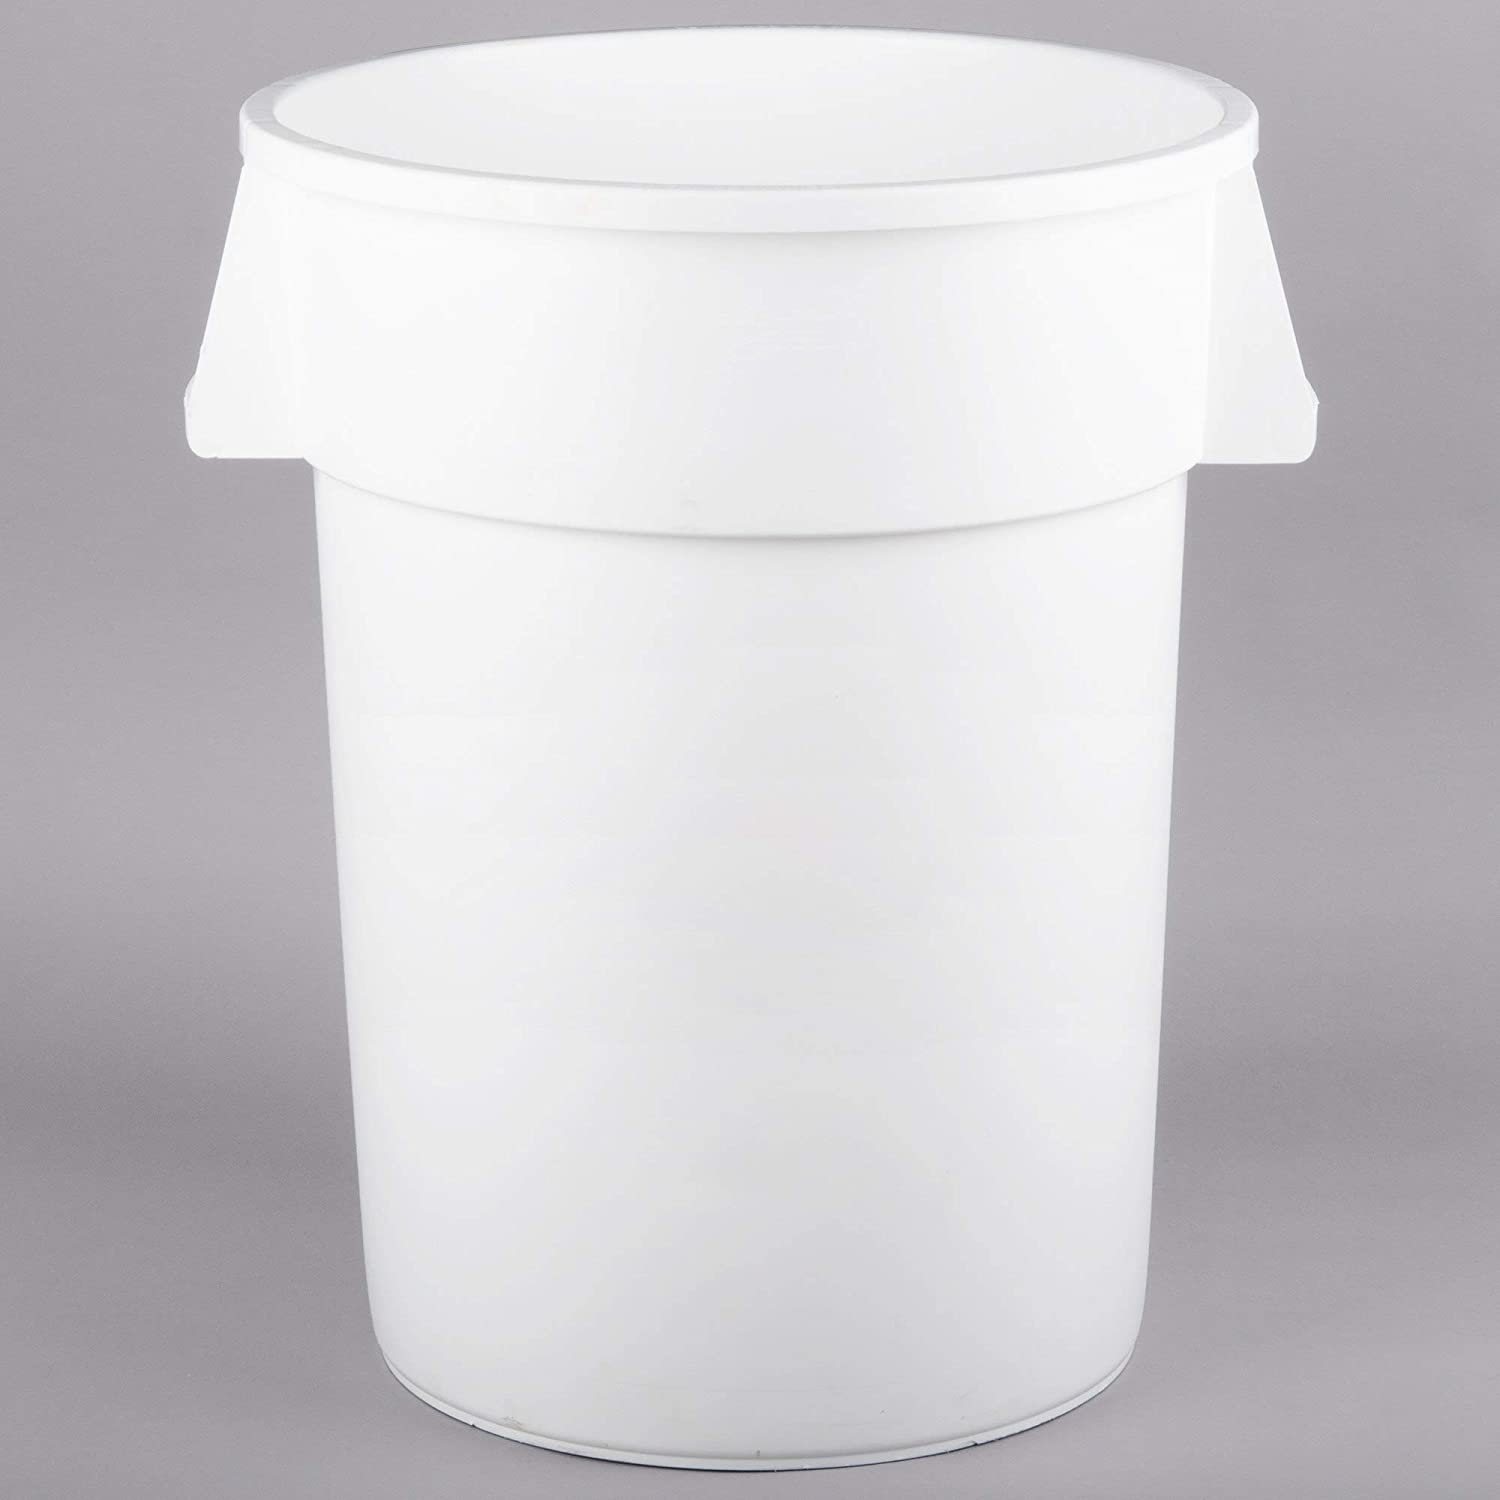 PRO&Family 3 Pack! 44 Gallon White Trash Can. Commercial Trash Container. Ingredient bin. Garbage. Waste Bin. Home, Office Trash Can. Commercial